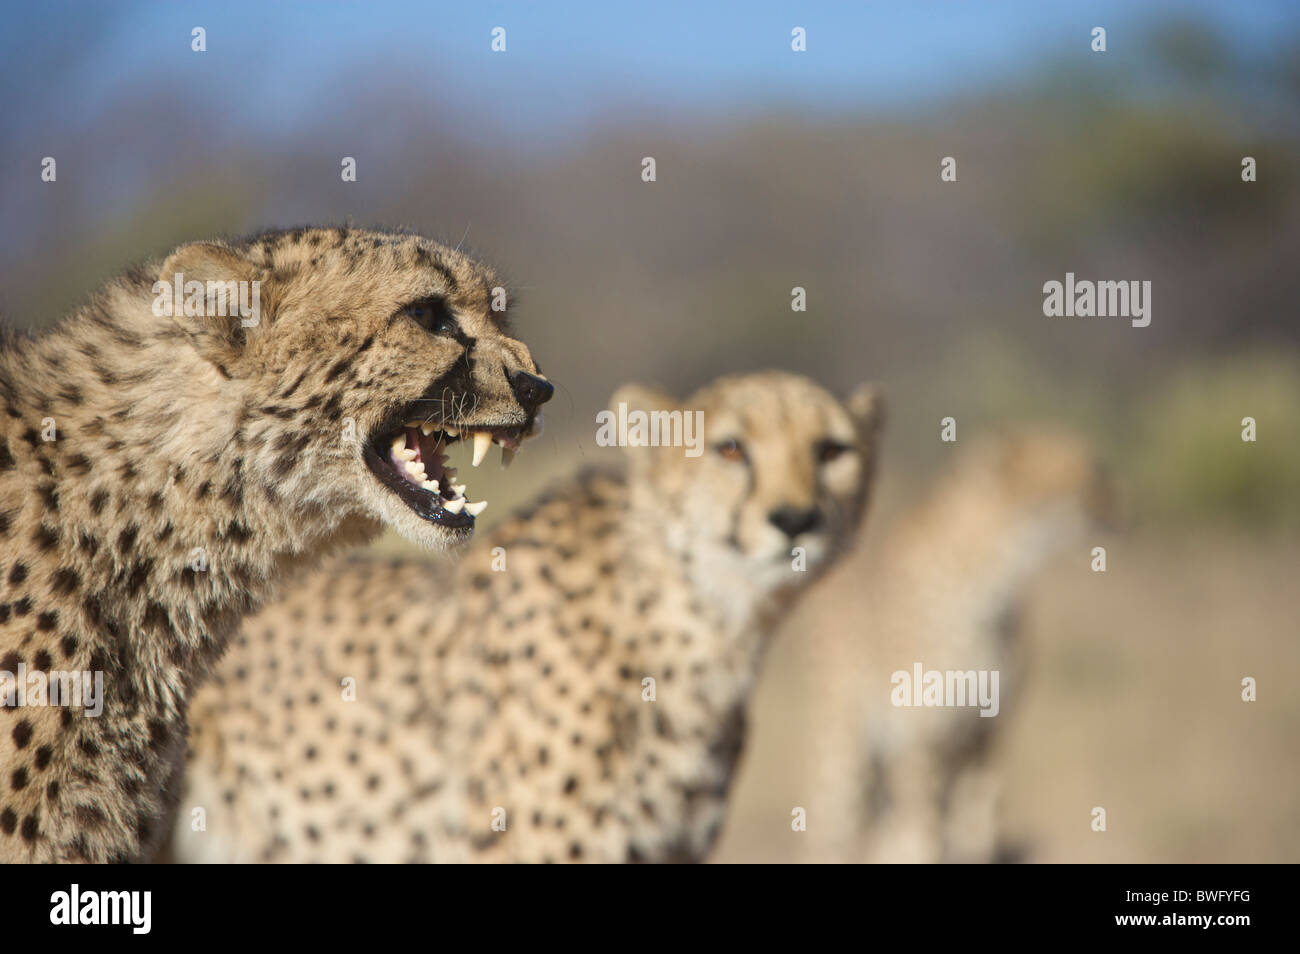 Ghepardo (Acinonyx jubatus) ululano con altri in background, Namibia Immagini Stock